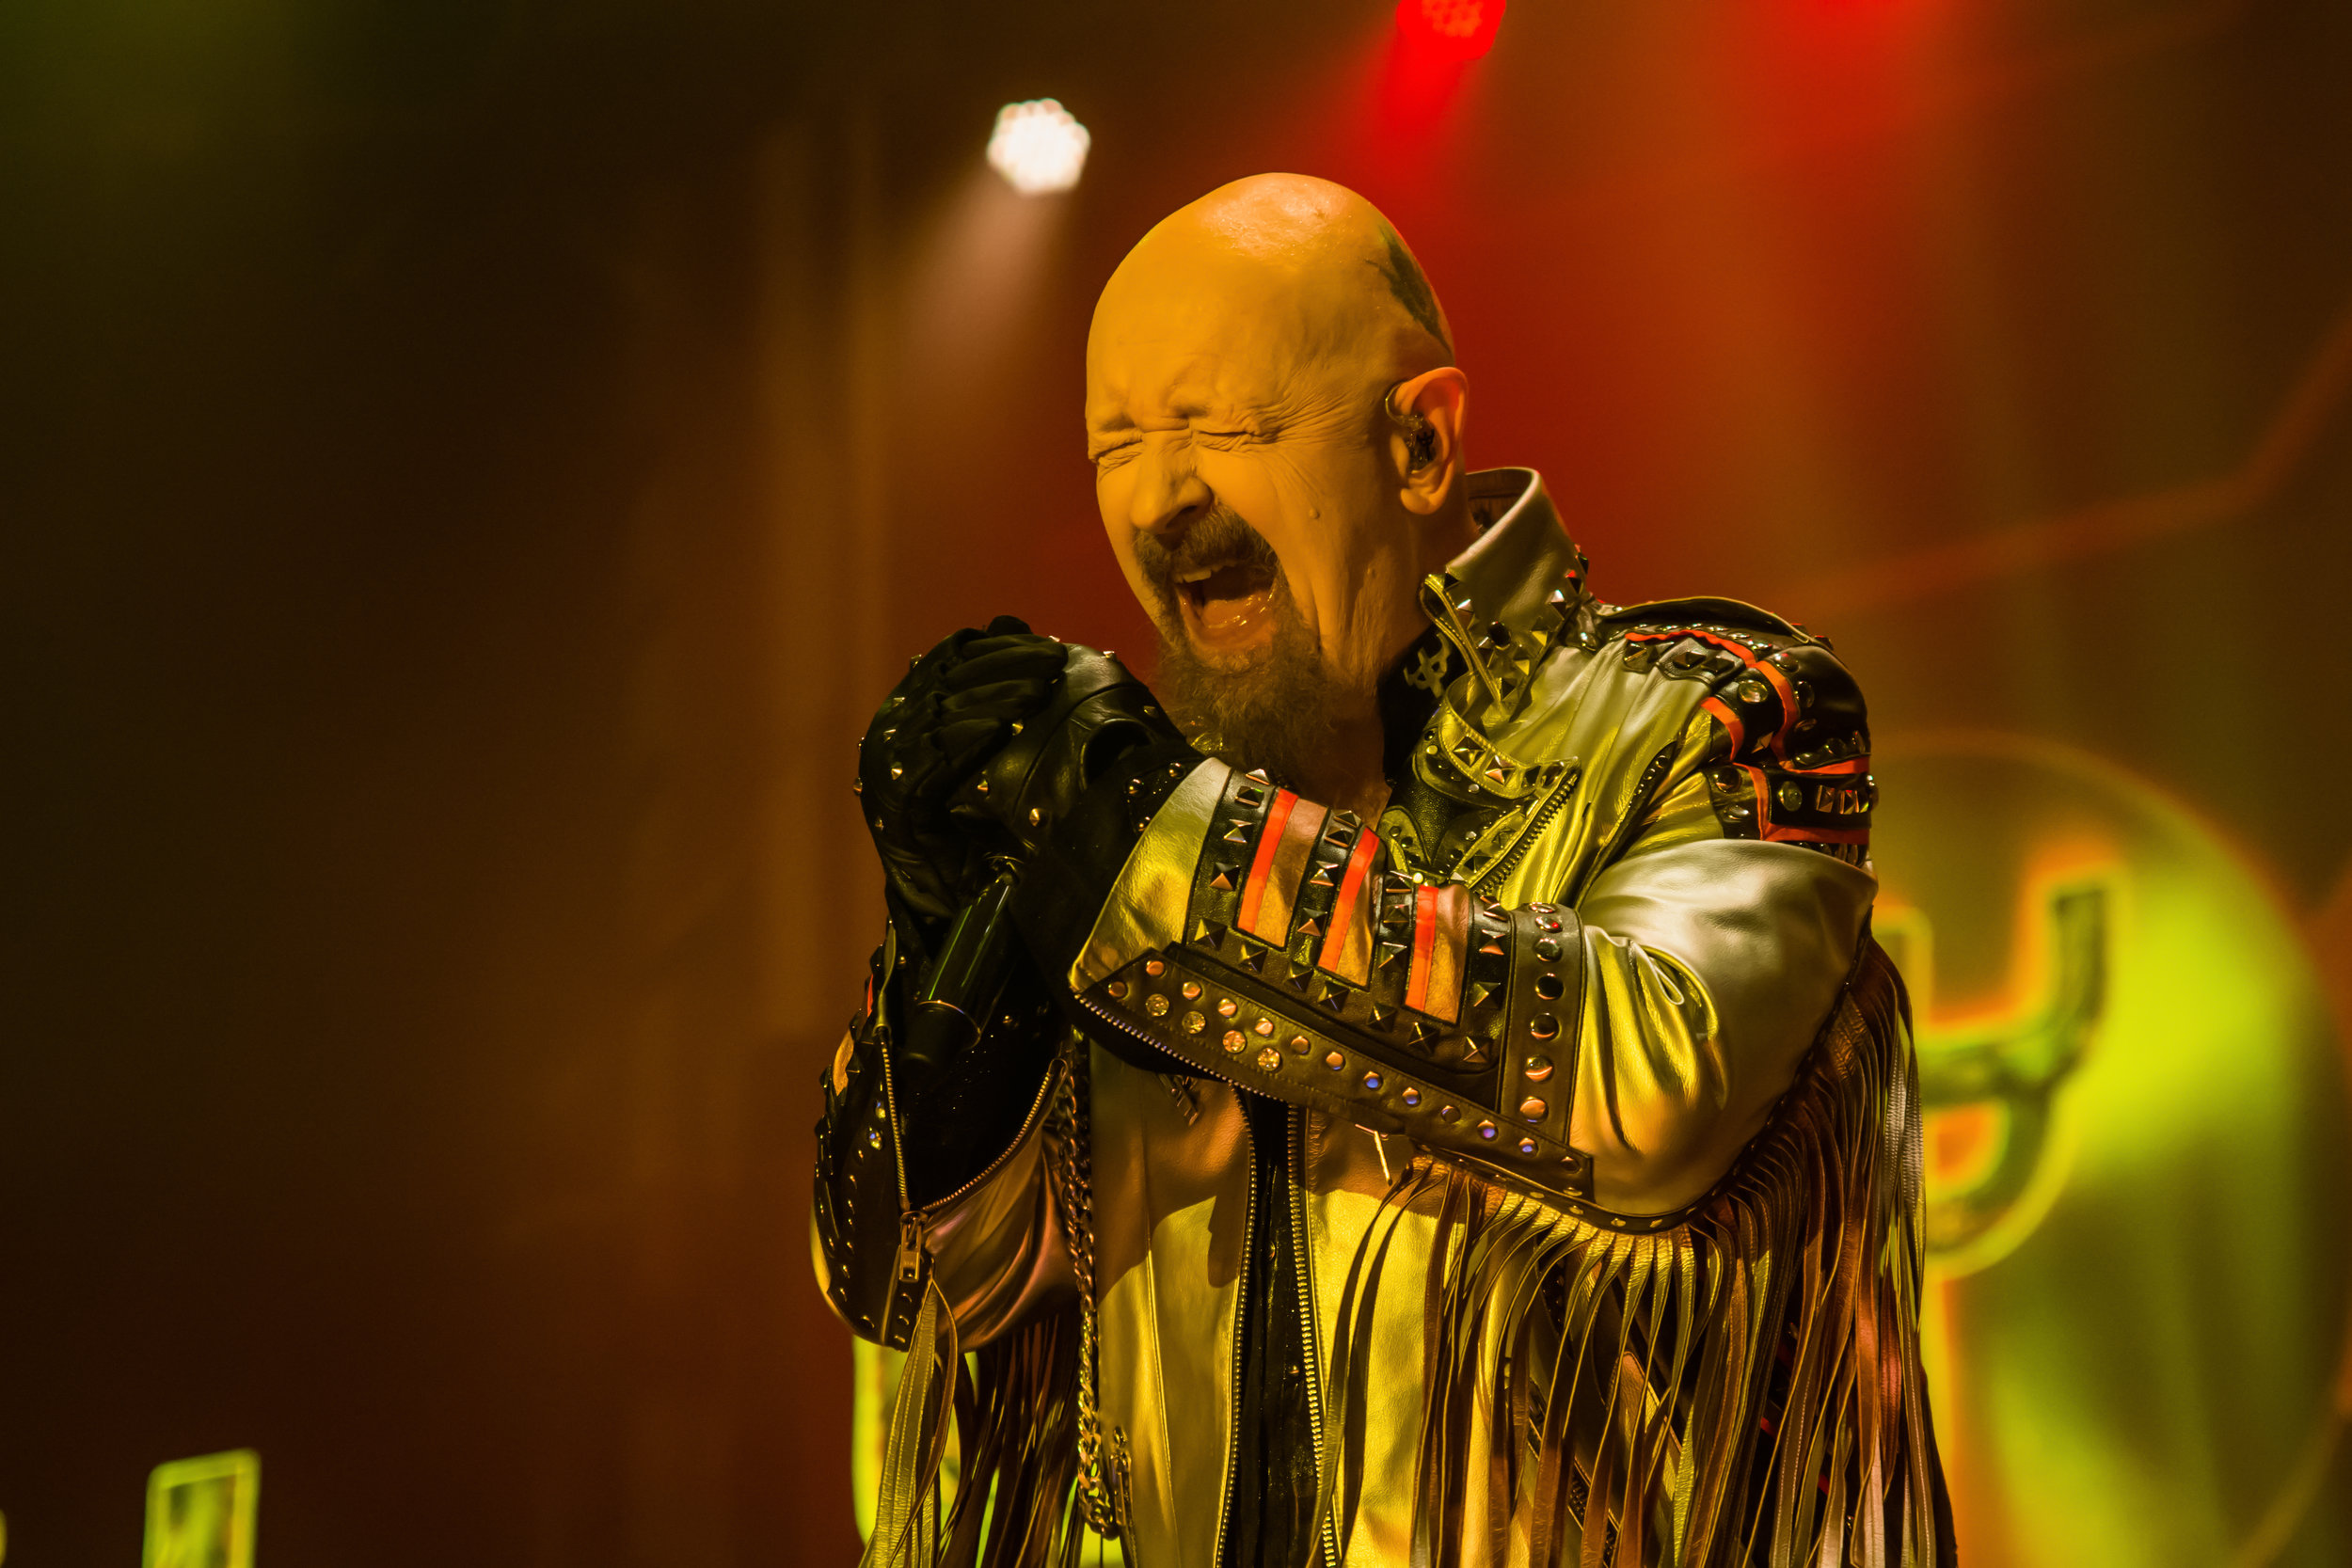 Judas_Priest-34.jpg